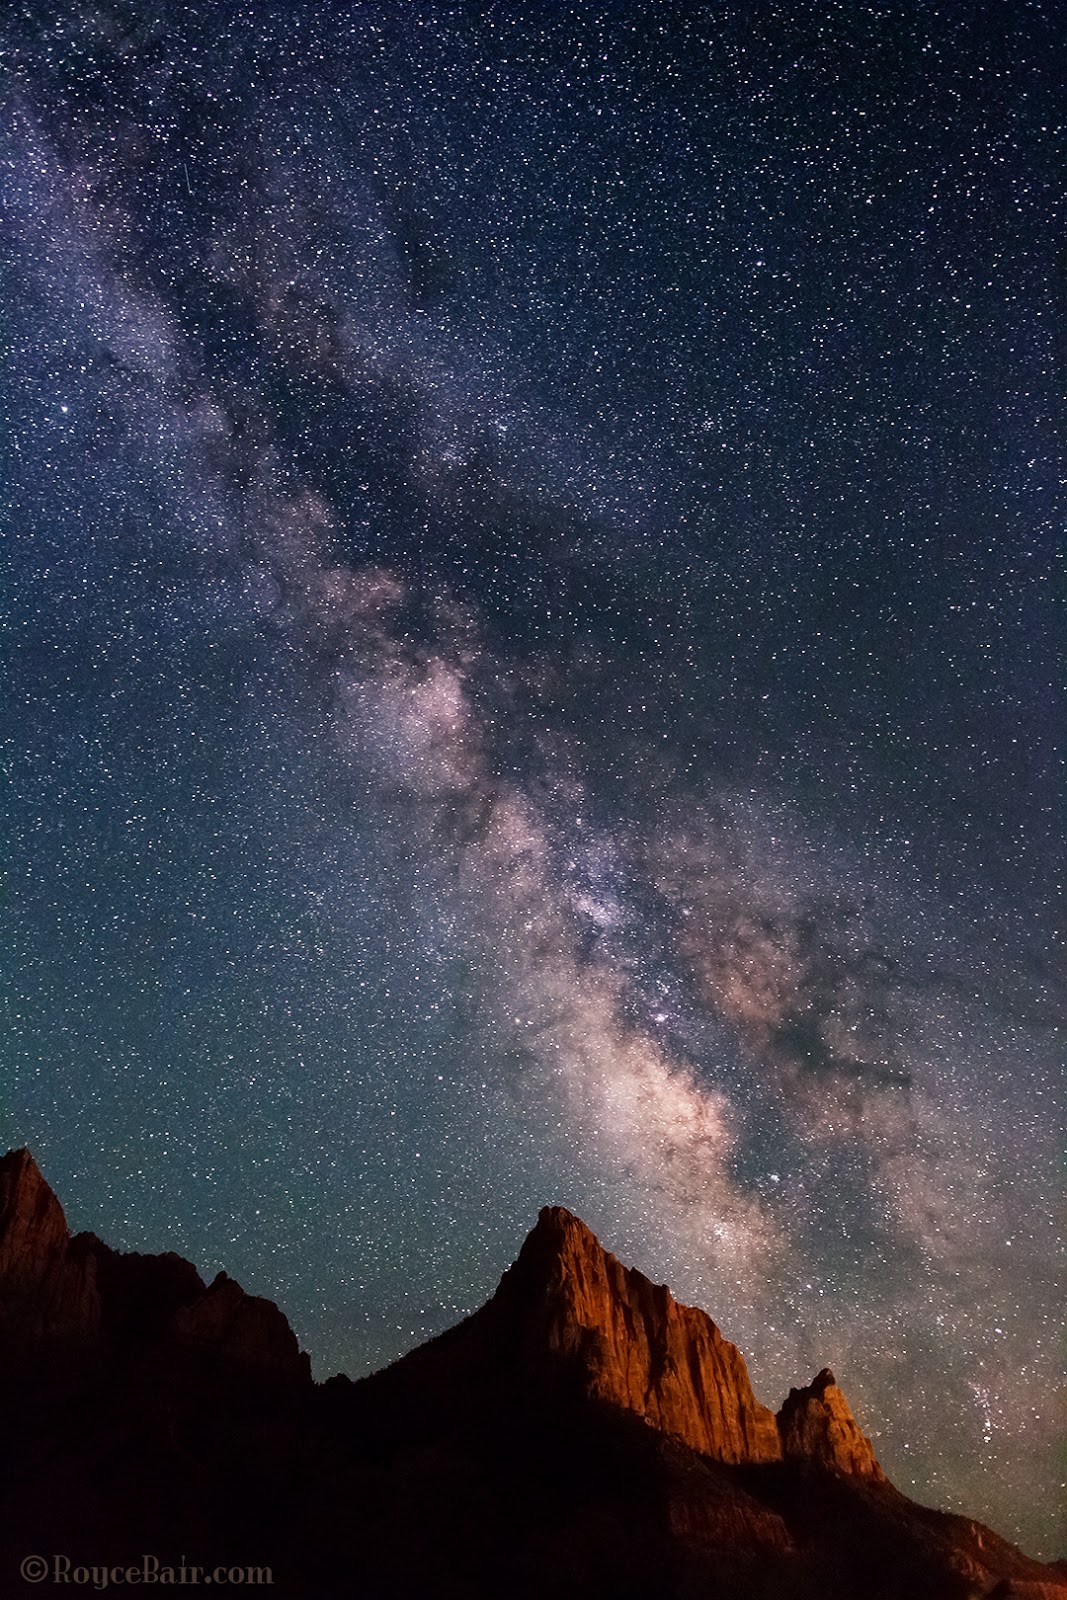 Into The Night Photography: View of the Milky Way with ...